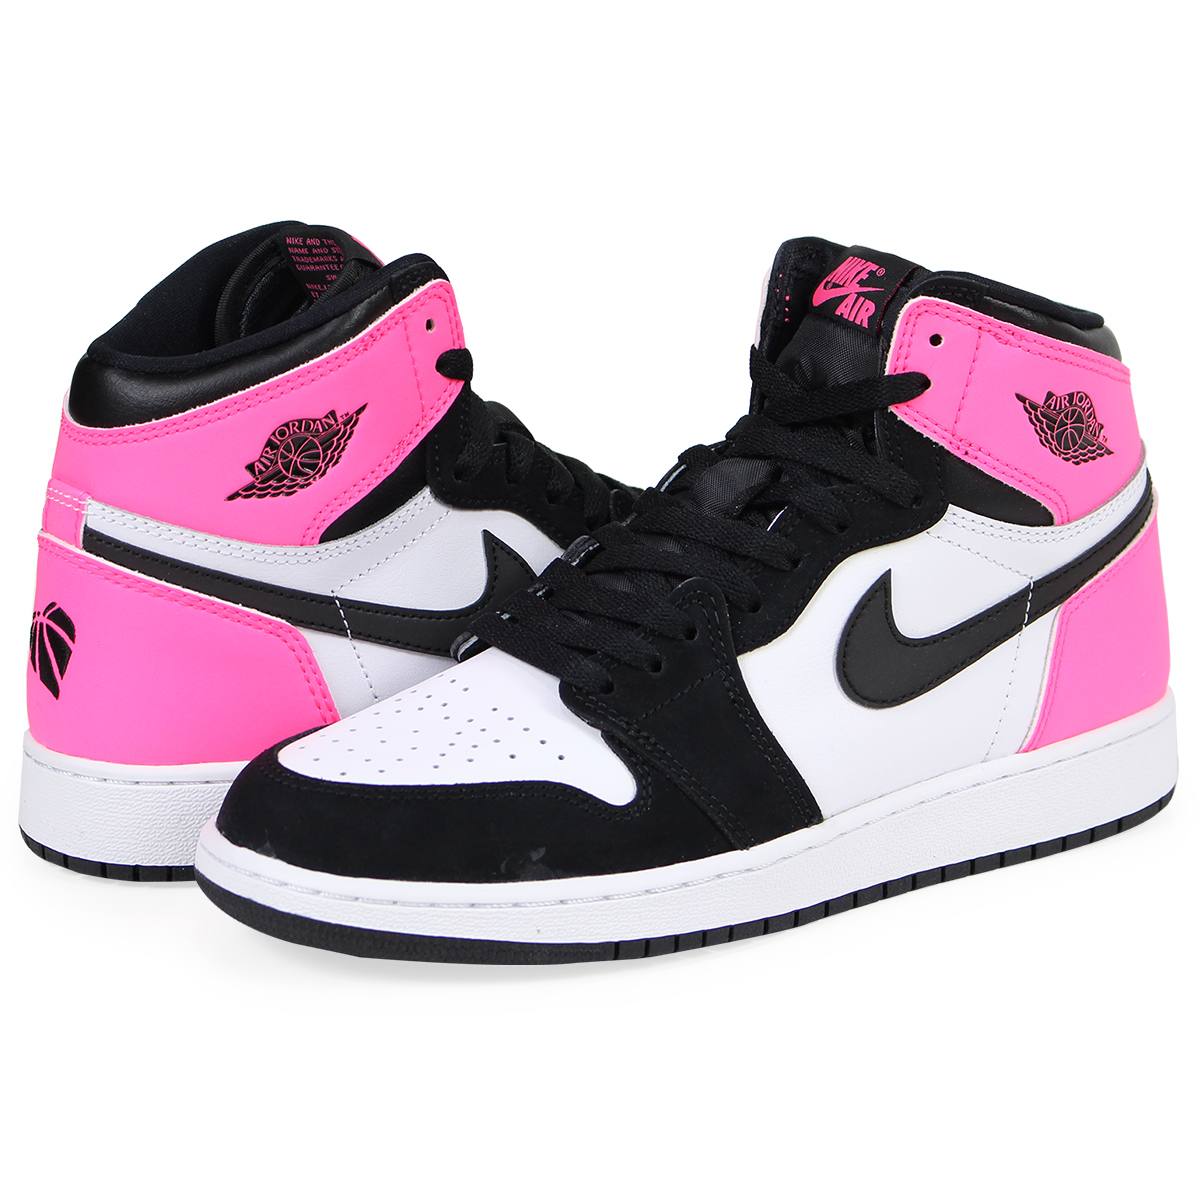 Whats Up Sports Nike Air Jordan 1 Retro High Og Gs Valentines Day